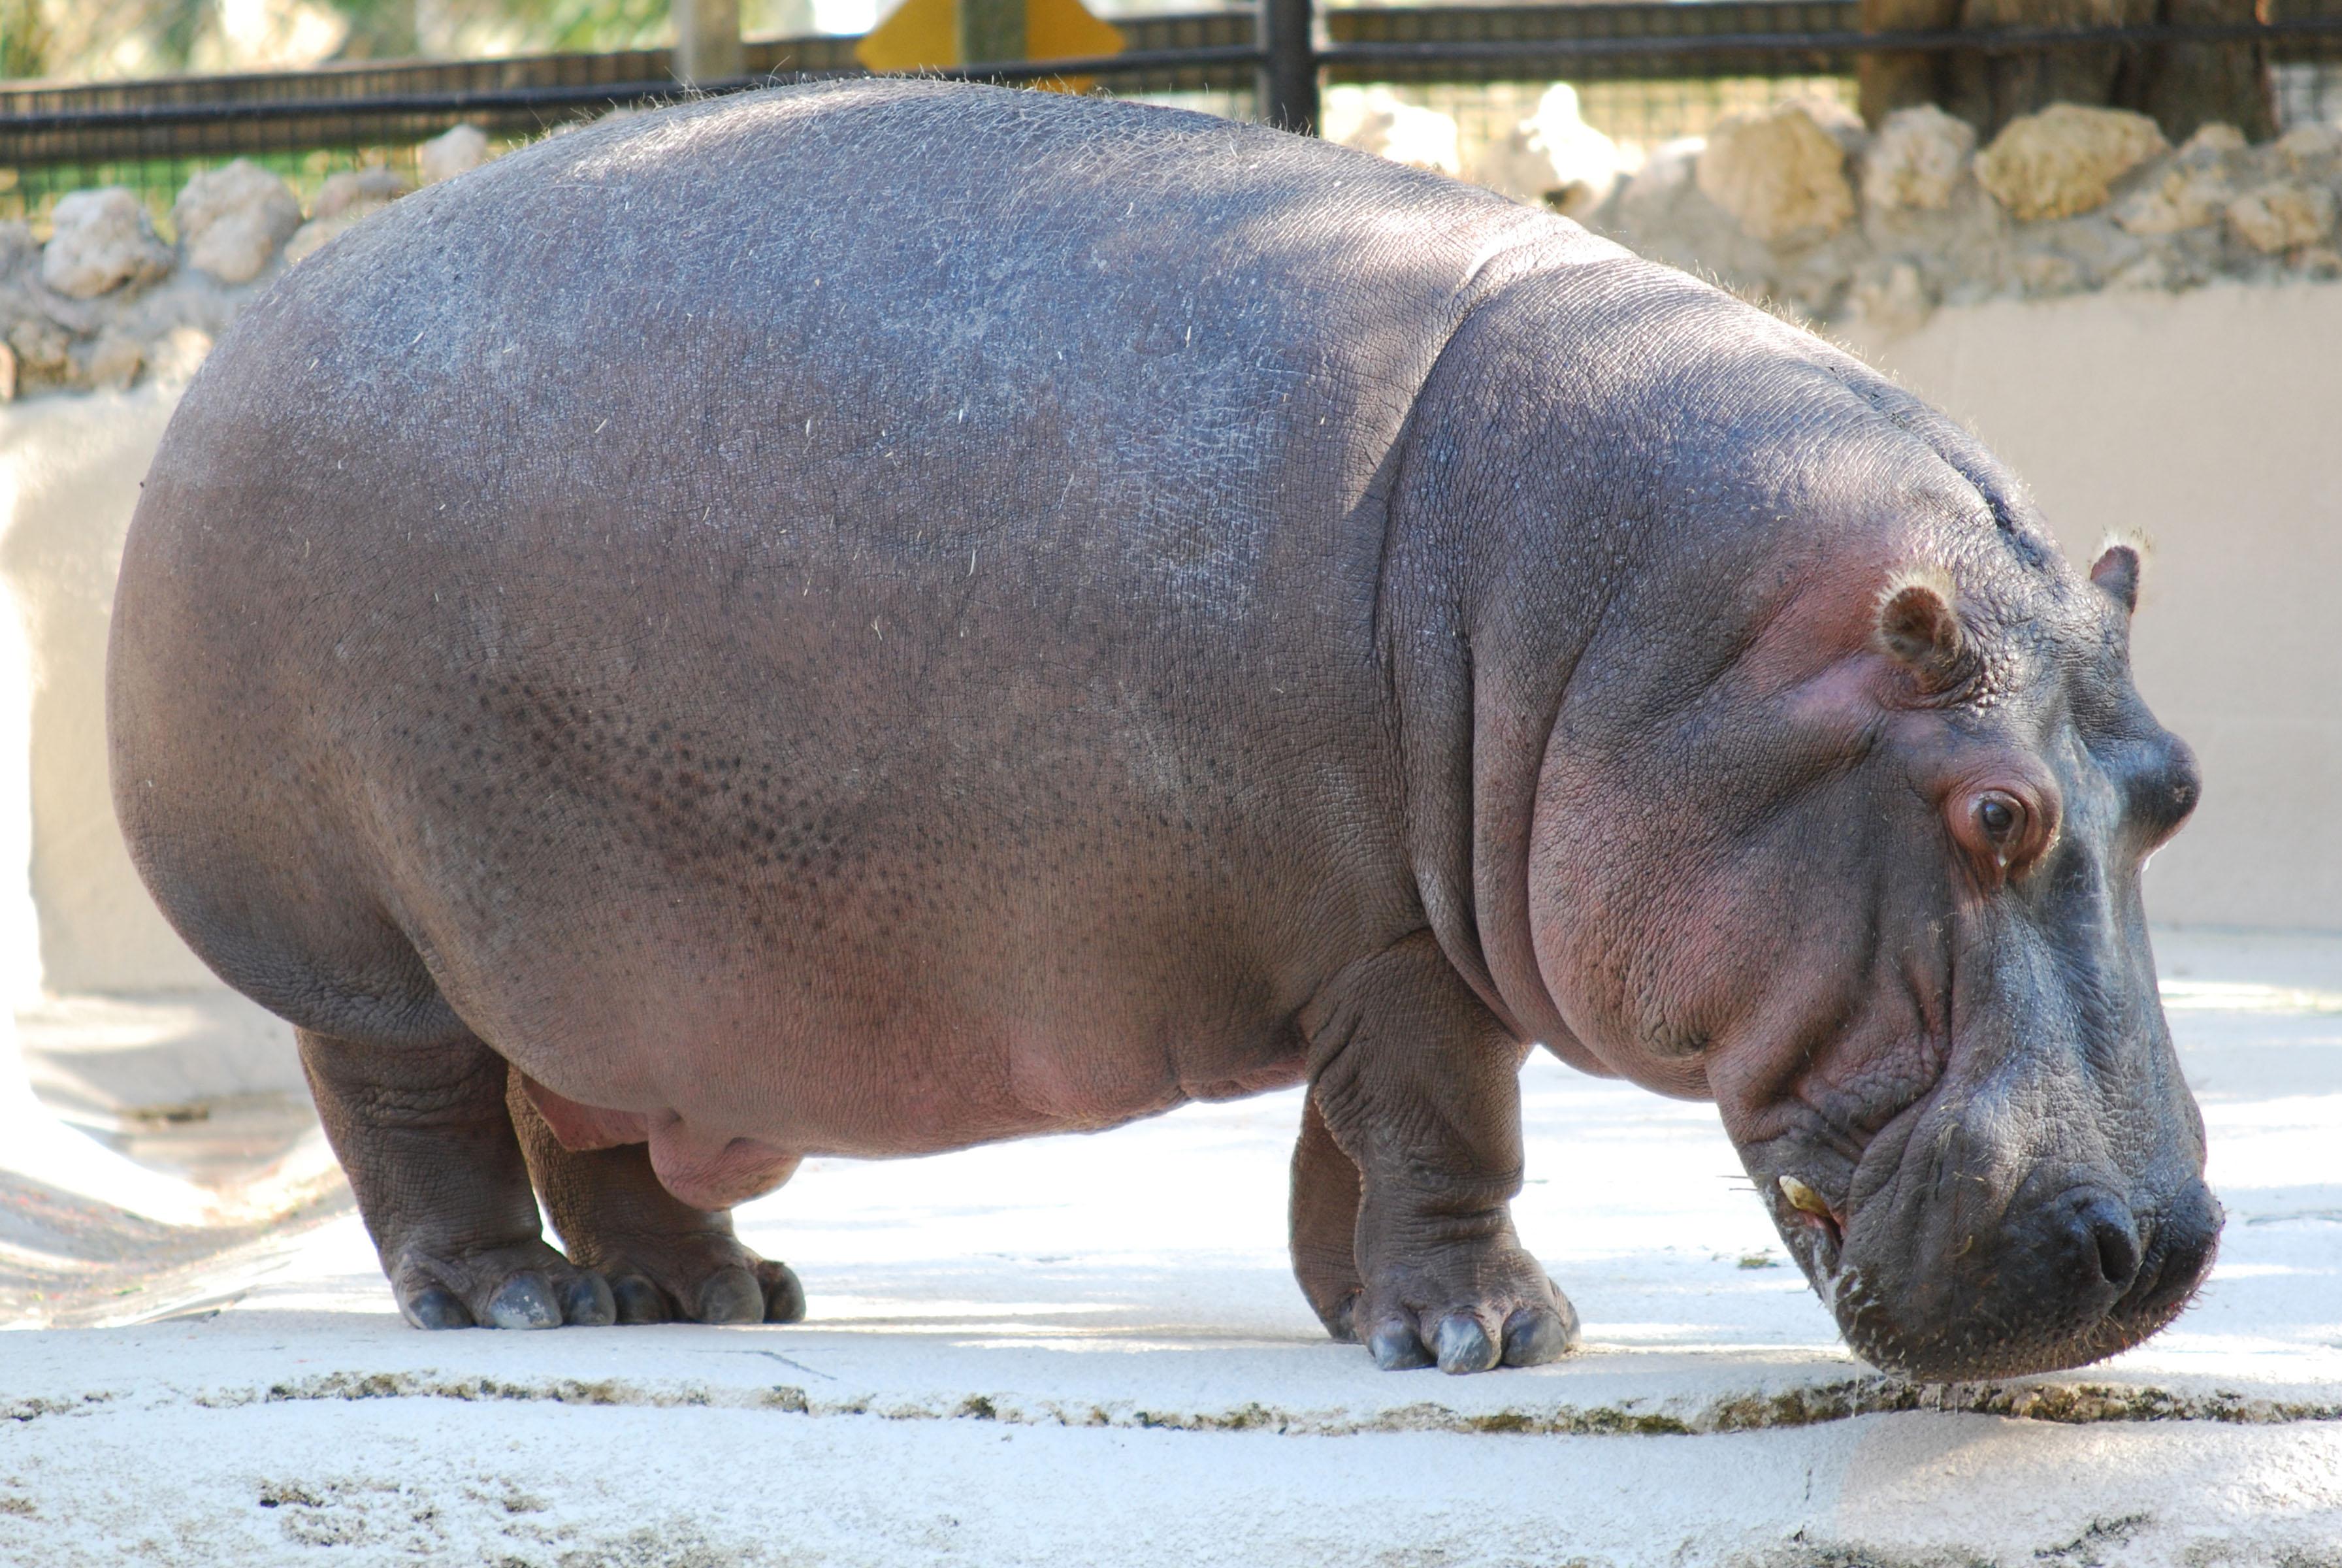 Hippopotamus Walking in a Zoo